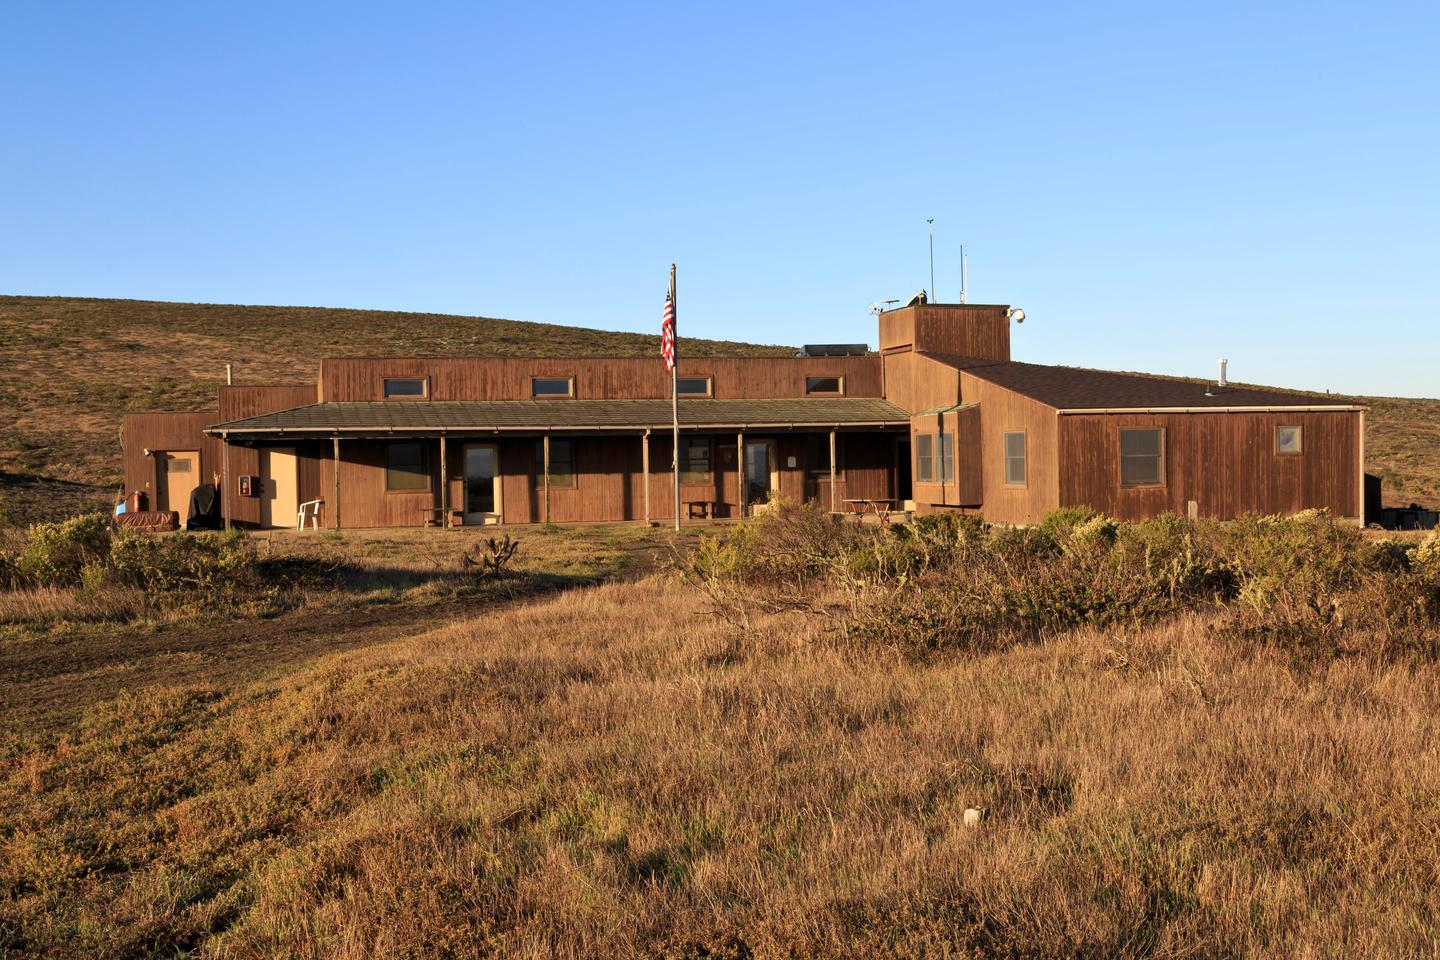 San Miguel Island Visitor Contact and Ranger Station